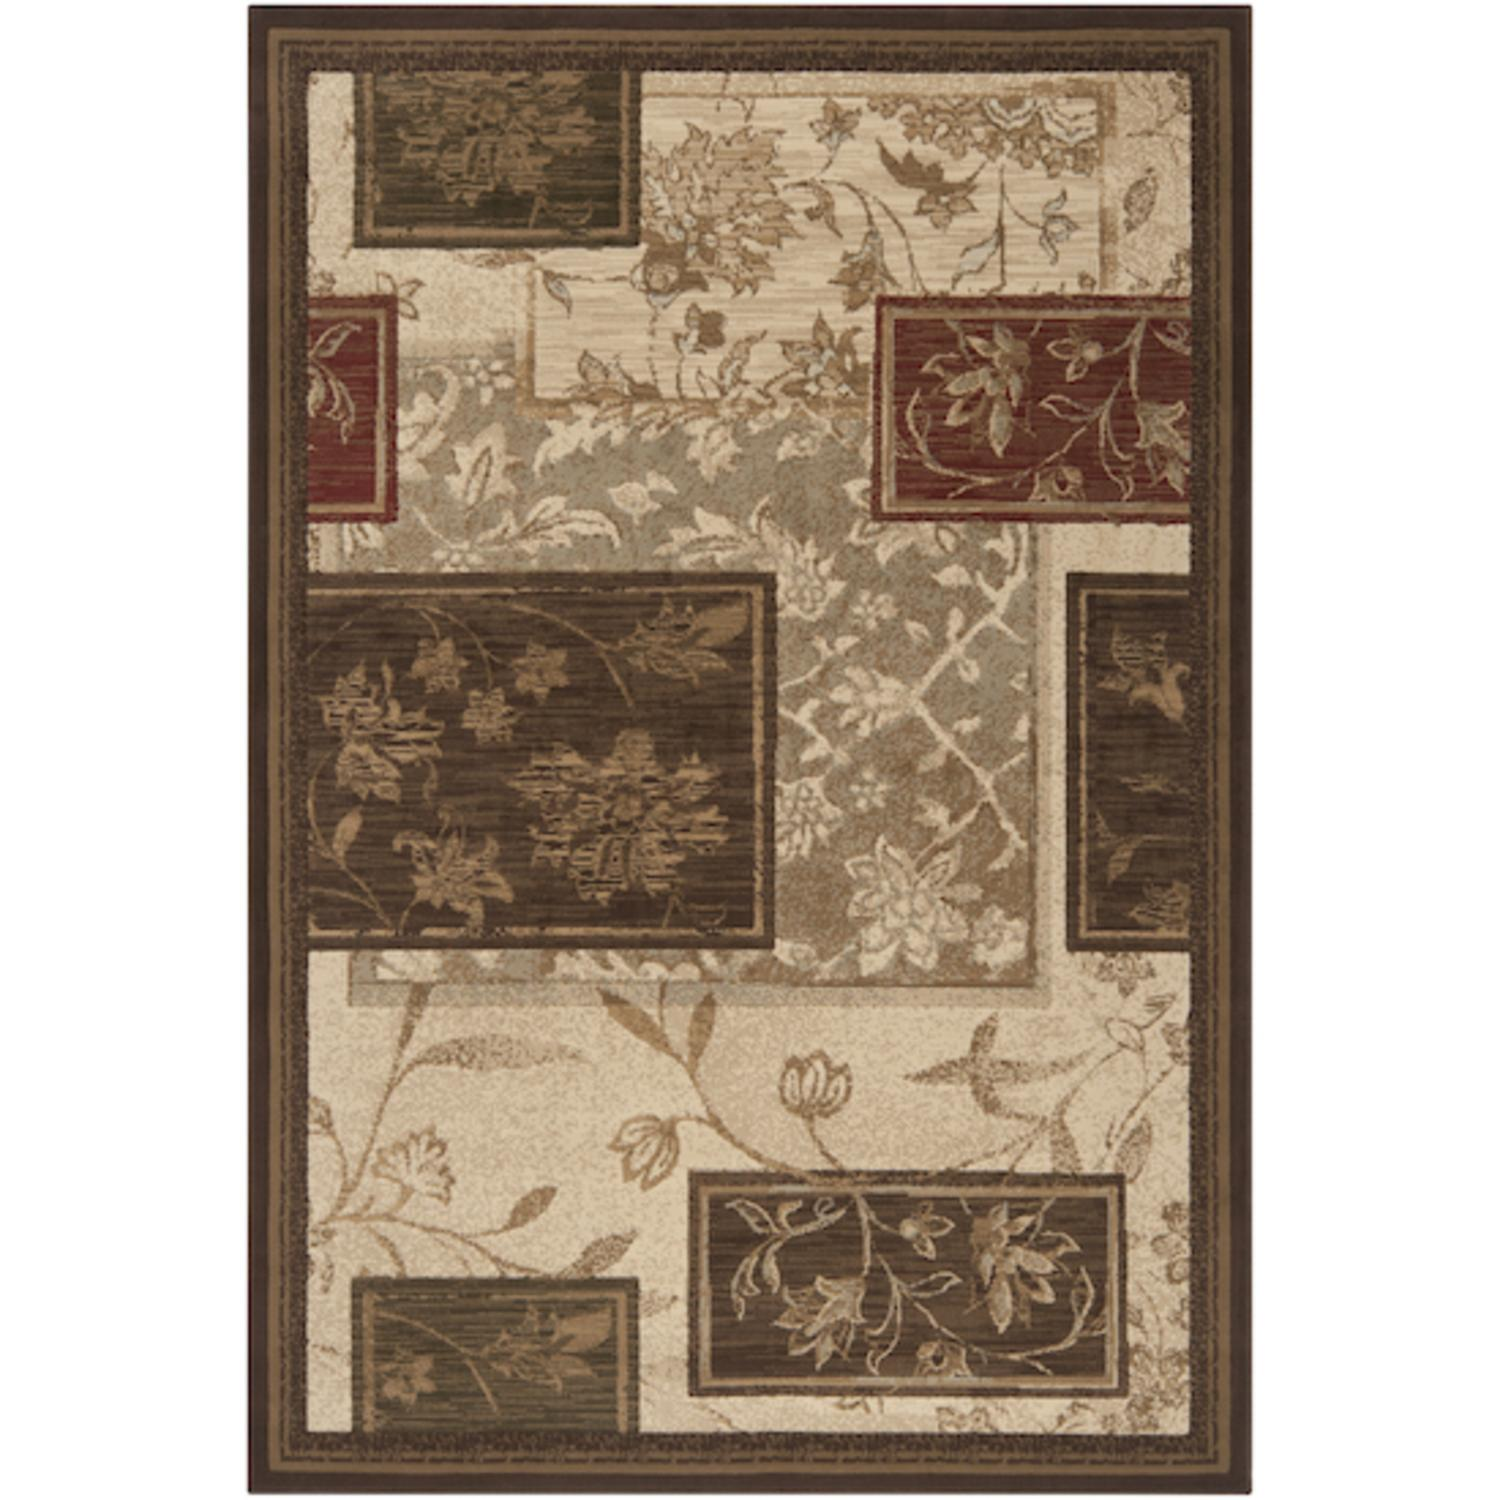 7.75' x 10.5' The Bradford Sienna and Fatigue Green Rectangular Area Throw Rug